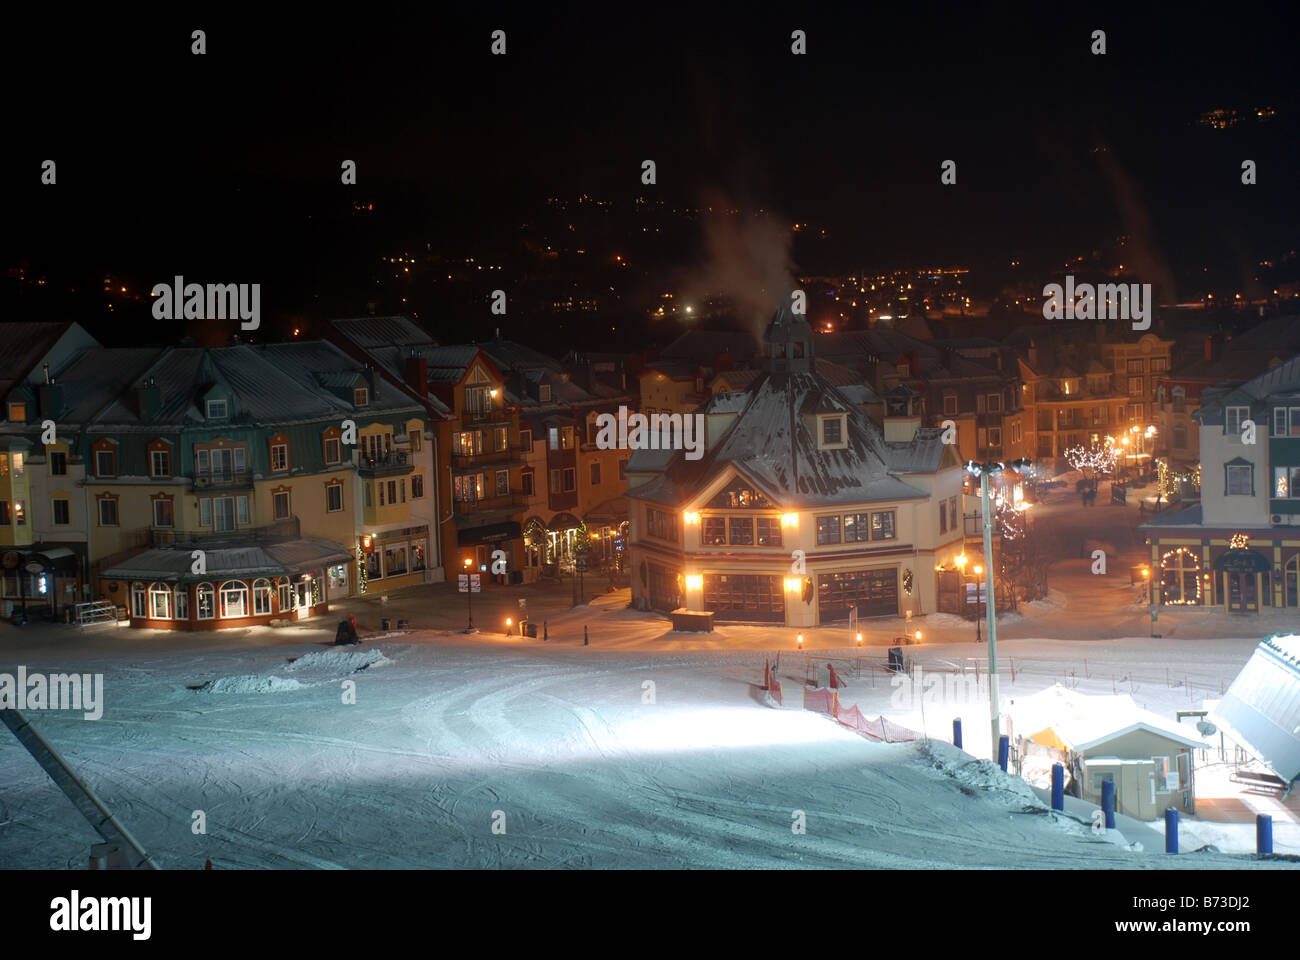 Mont Tremblant, Quebec, Canada at night - Stock Image